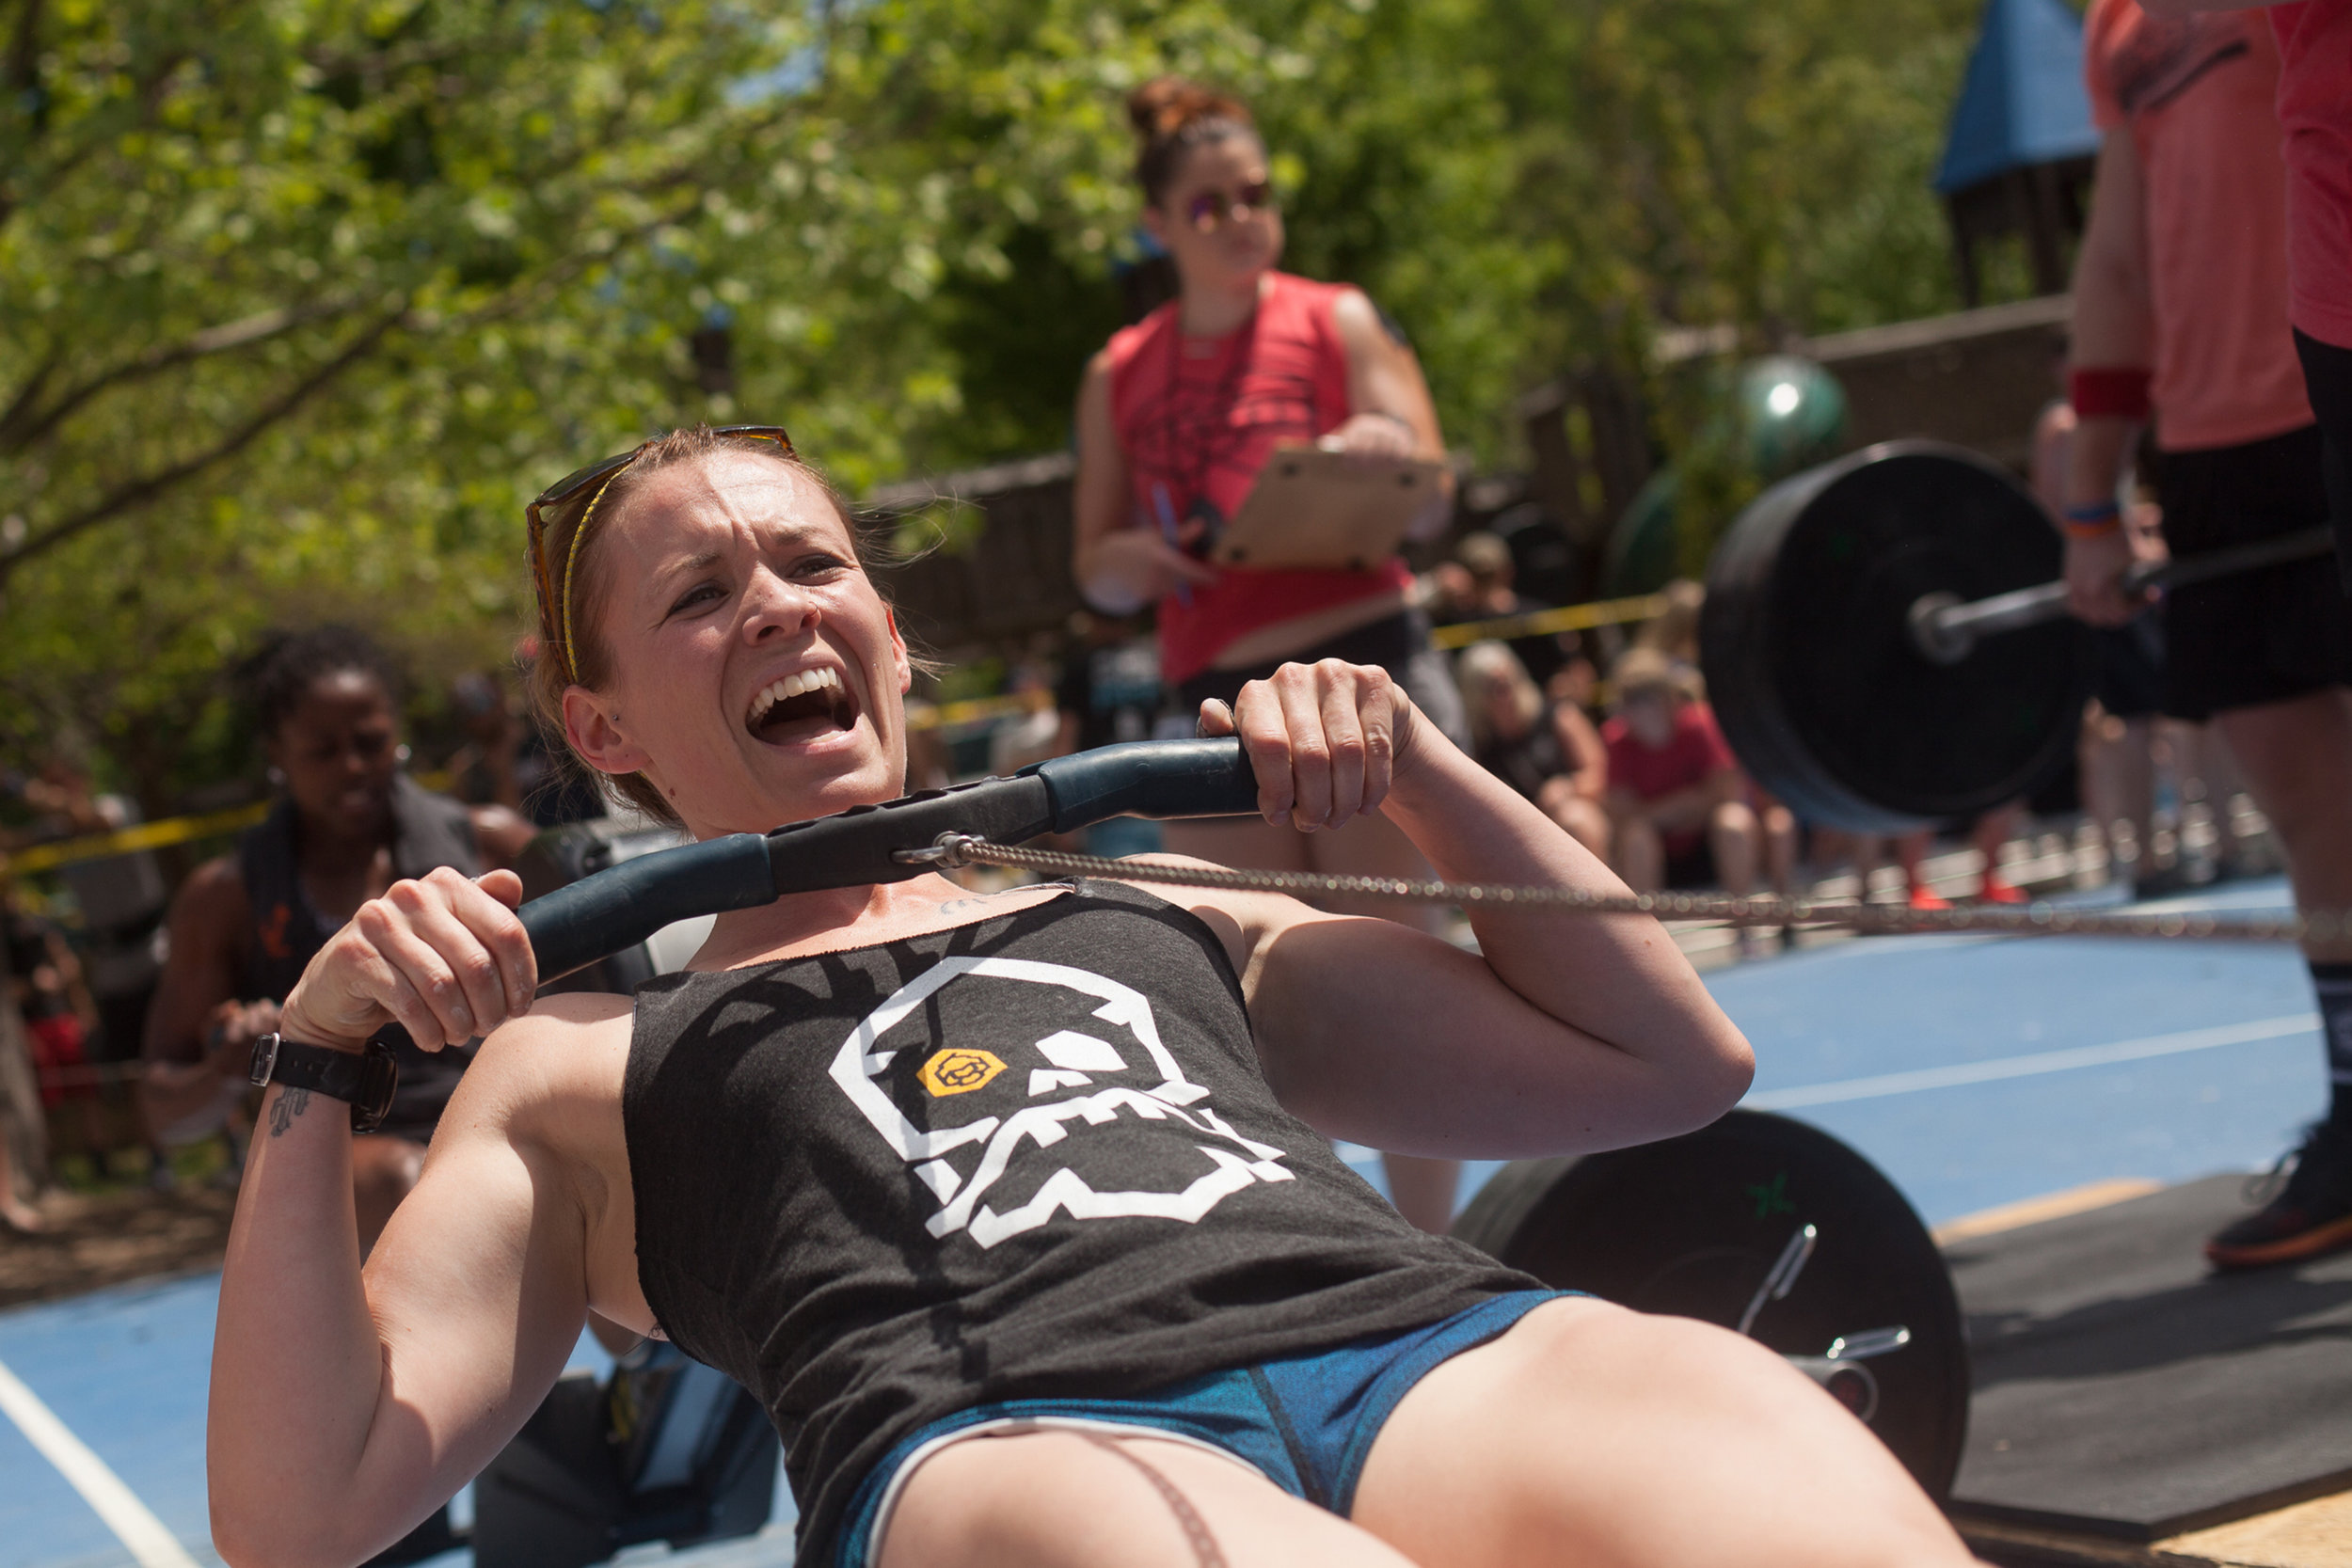 crossfit - competition rowing